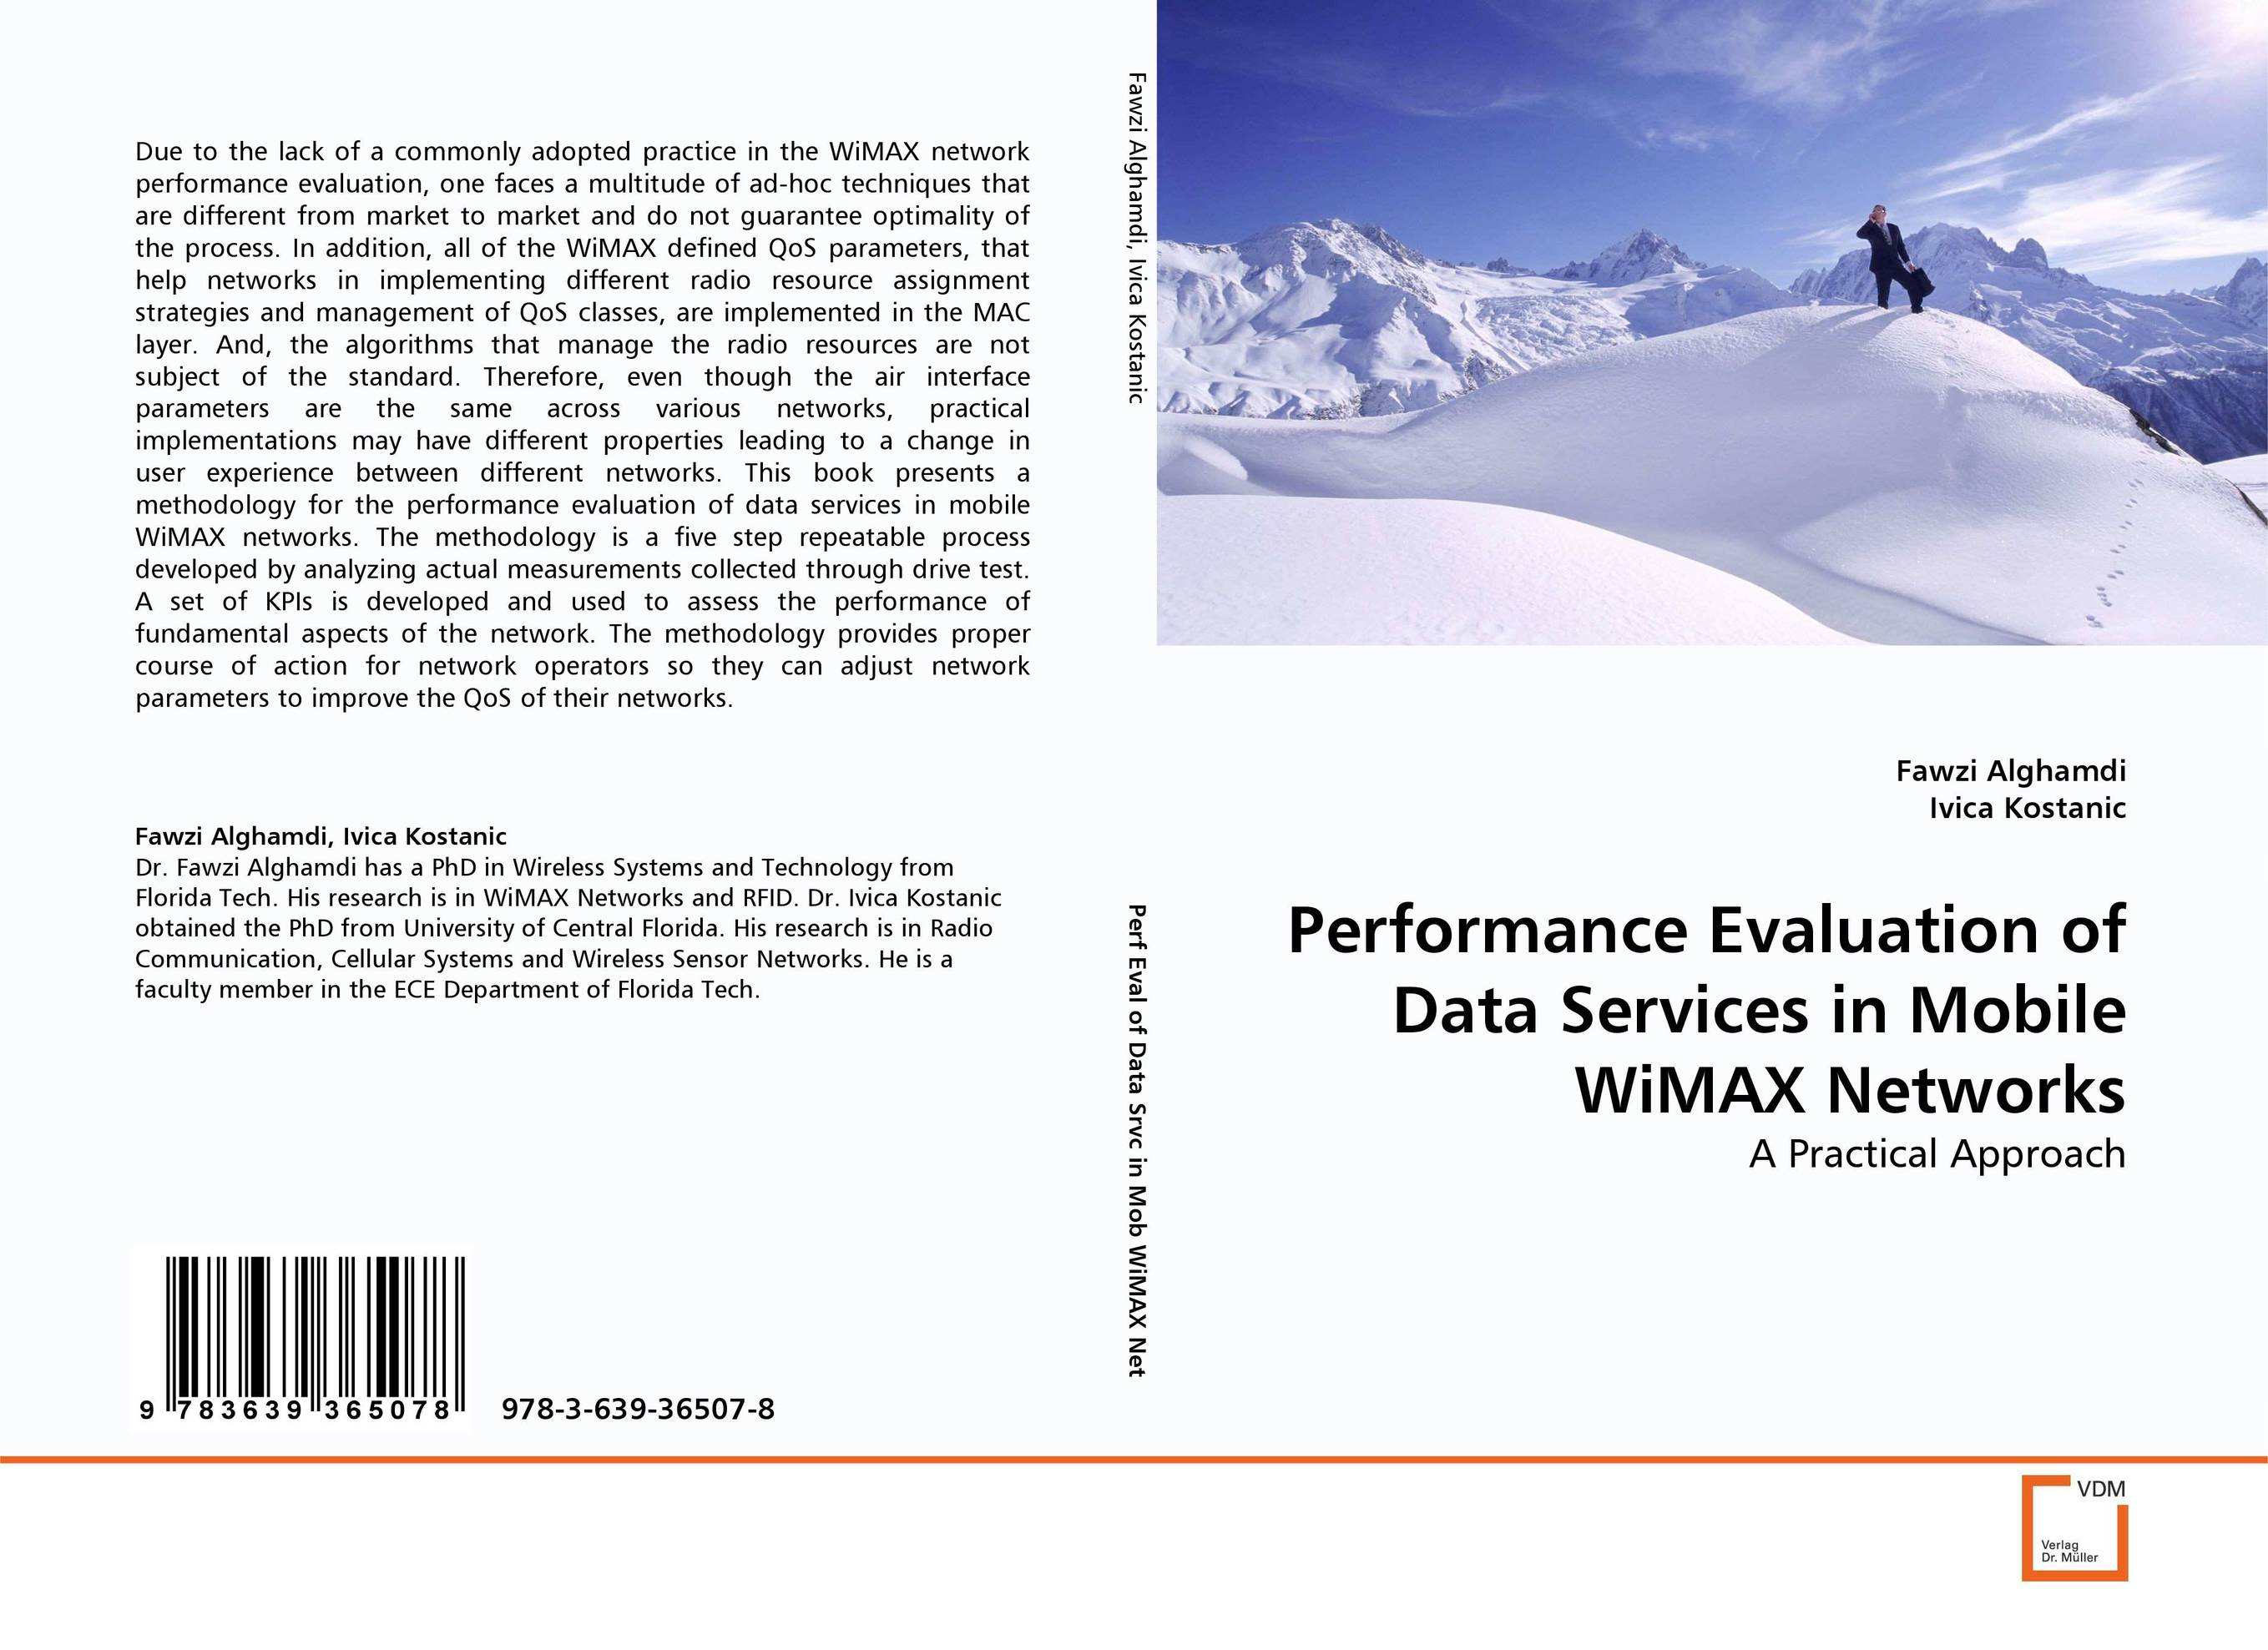 Performance Evaluation of Data Services in Mobile WiMAX Networks evaluation of lte advanced networks